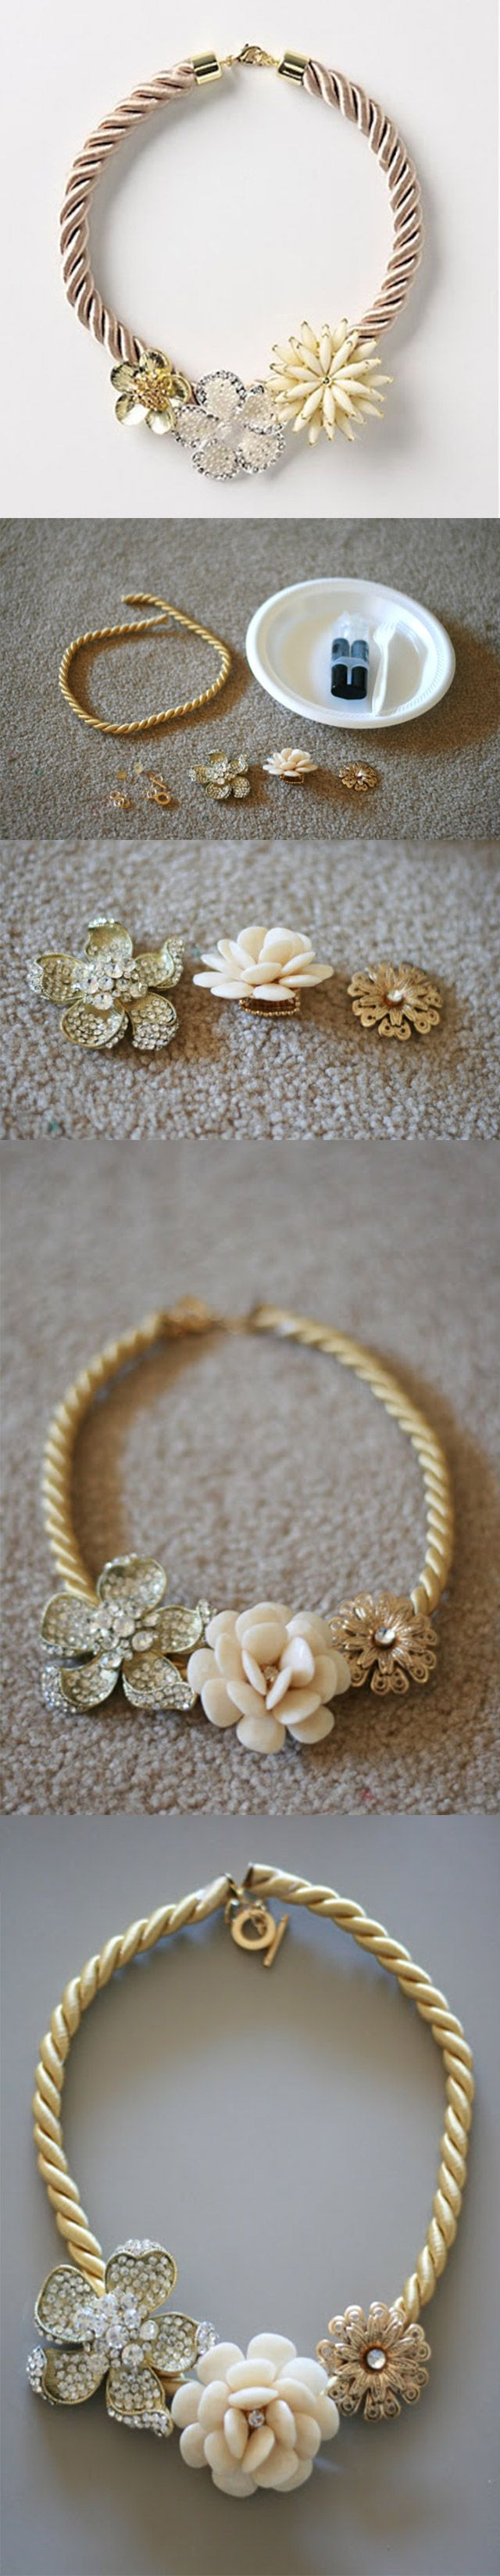 Diy: 11 Beautiful Ideas For Necklace